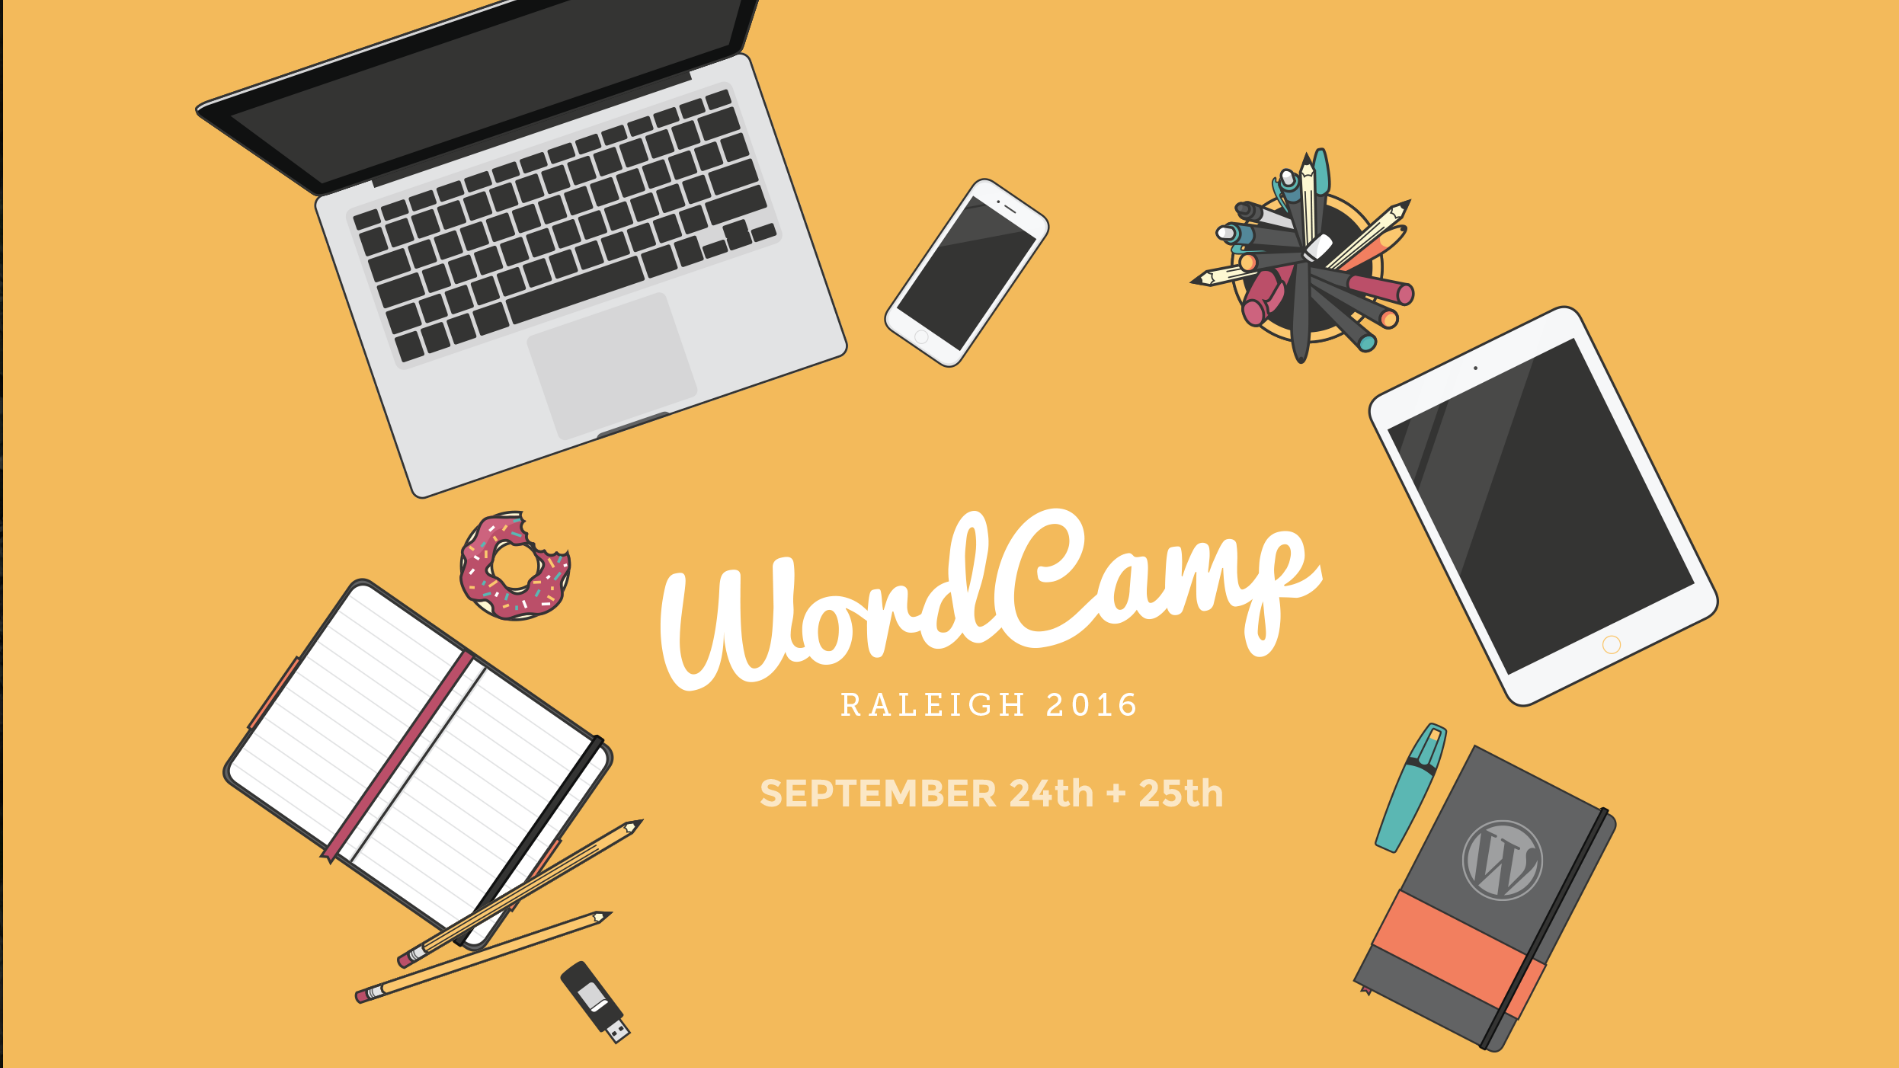 Calvin is speaking at WordCamp Raleigh 2016!